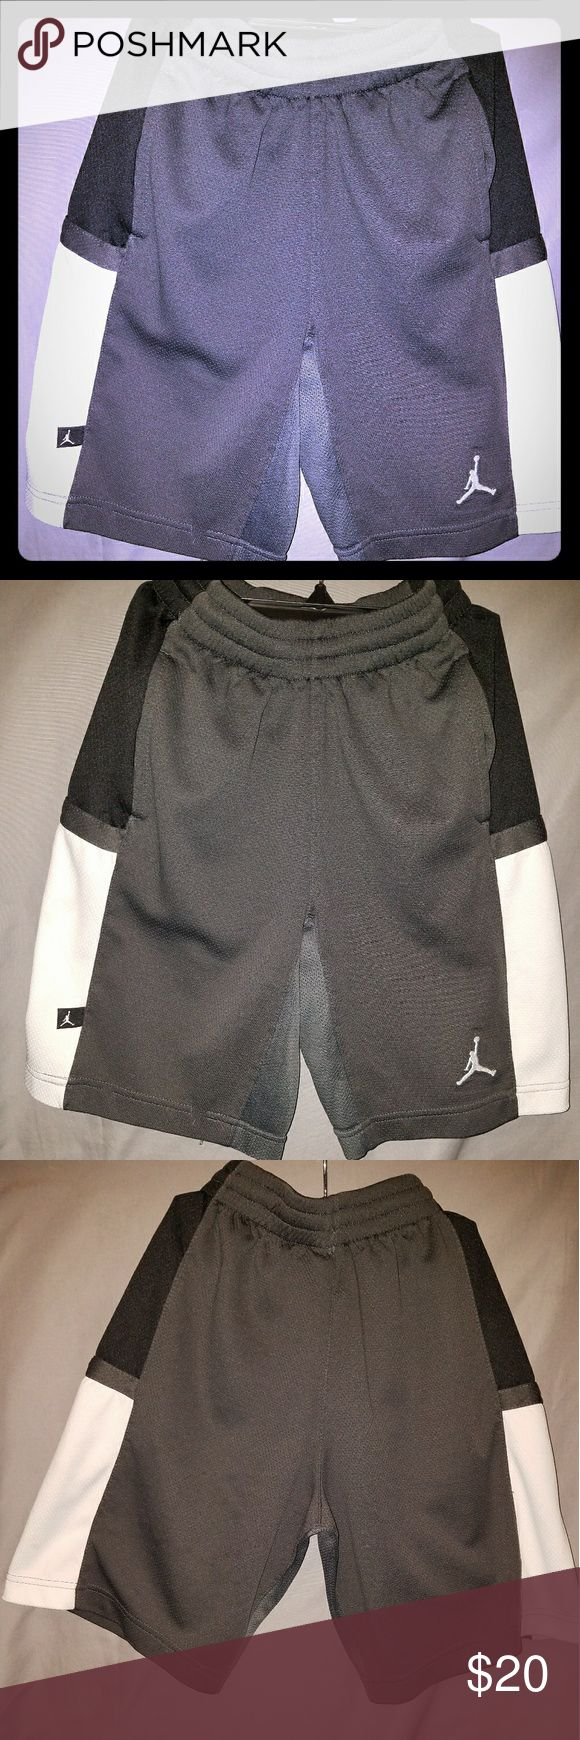 Michael Jordan basketball shorts Michael Jordan basketball shorts Gray, Black and White Jordan Bottoms Shorts